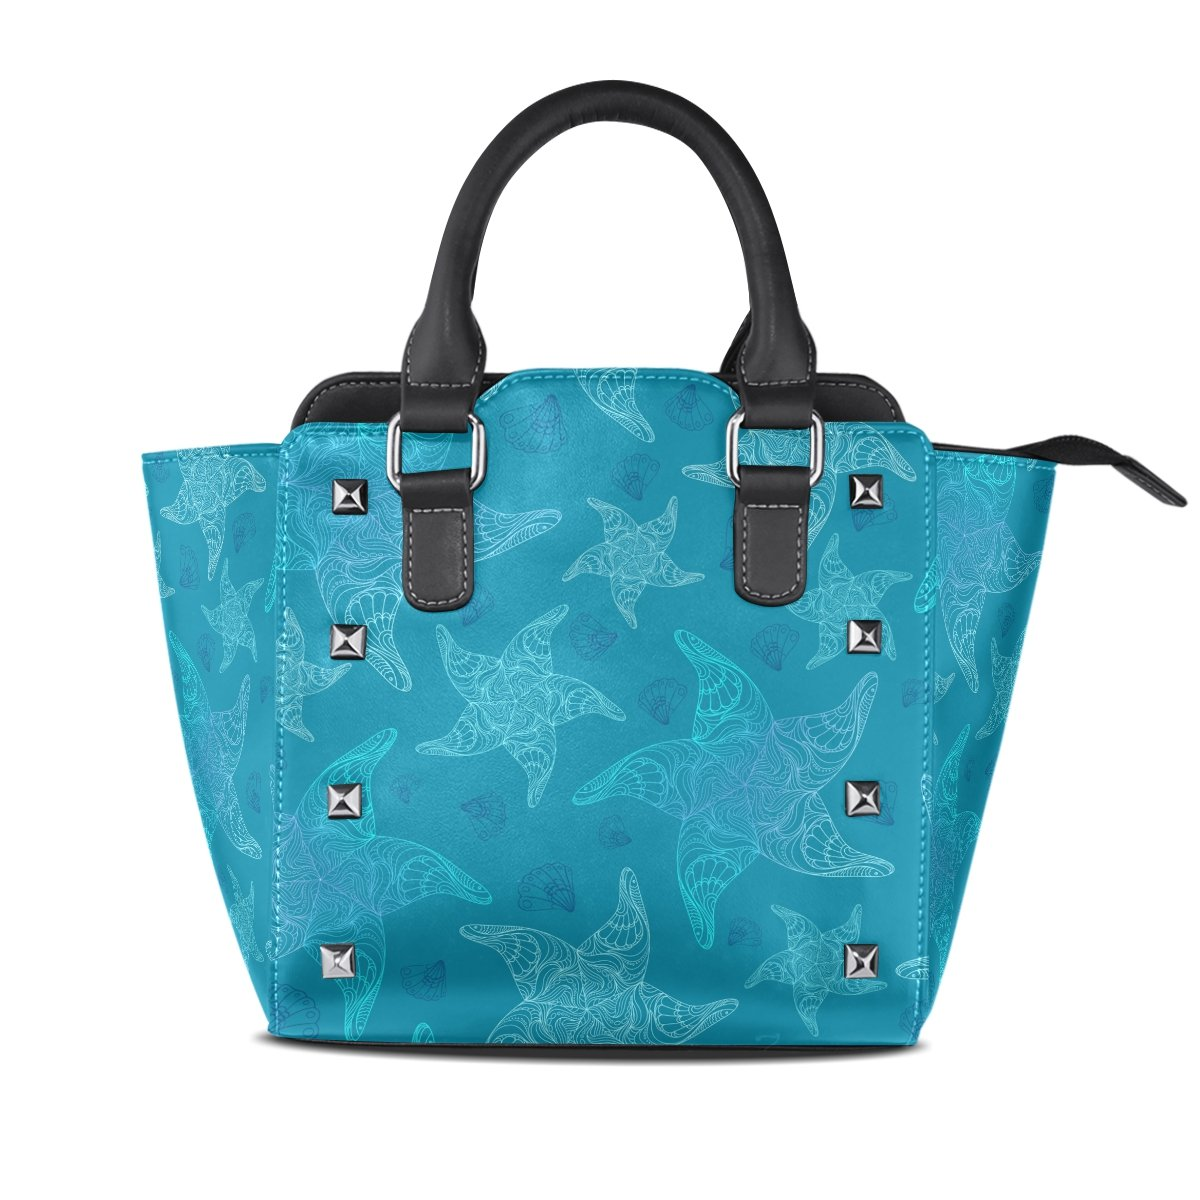 Womens Genuine Leather Hangbags Tote Bags Starfish Purse Shoulder Bags